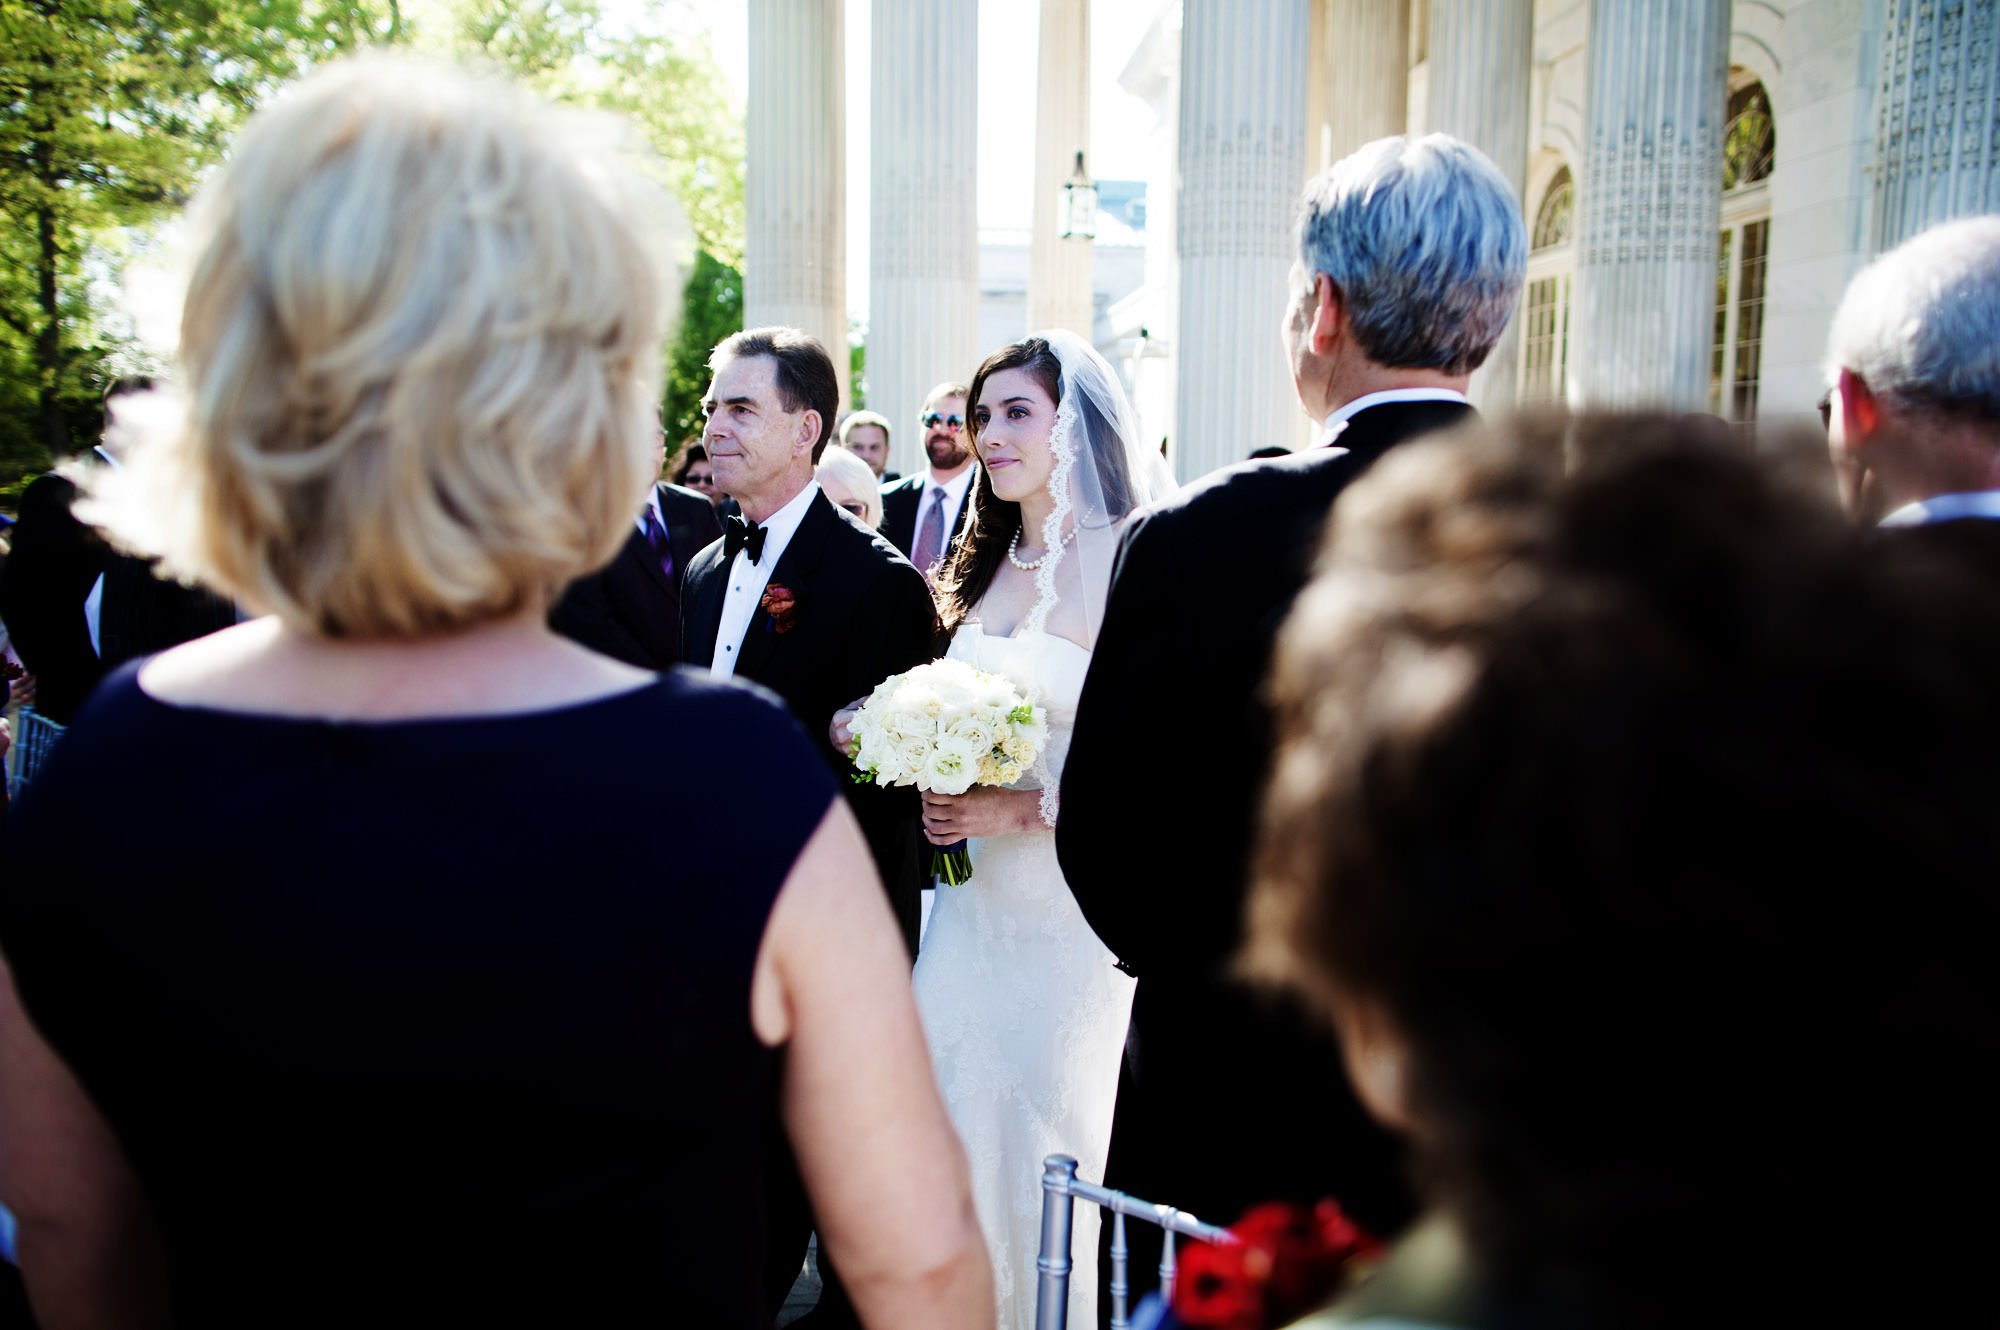 The bride is escorted down the aisle by her father during the DAR Memorial Continental Hall Wedding ceremony.